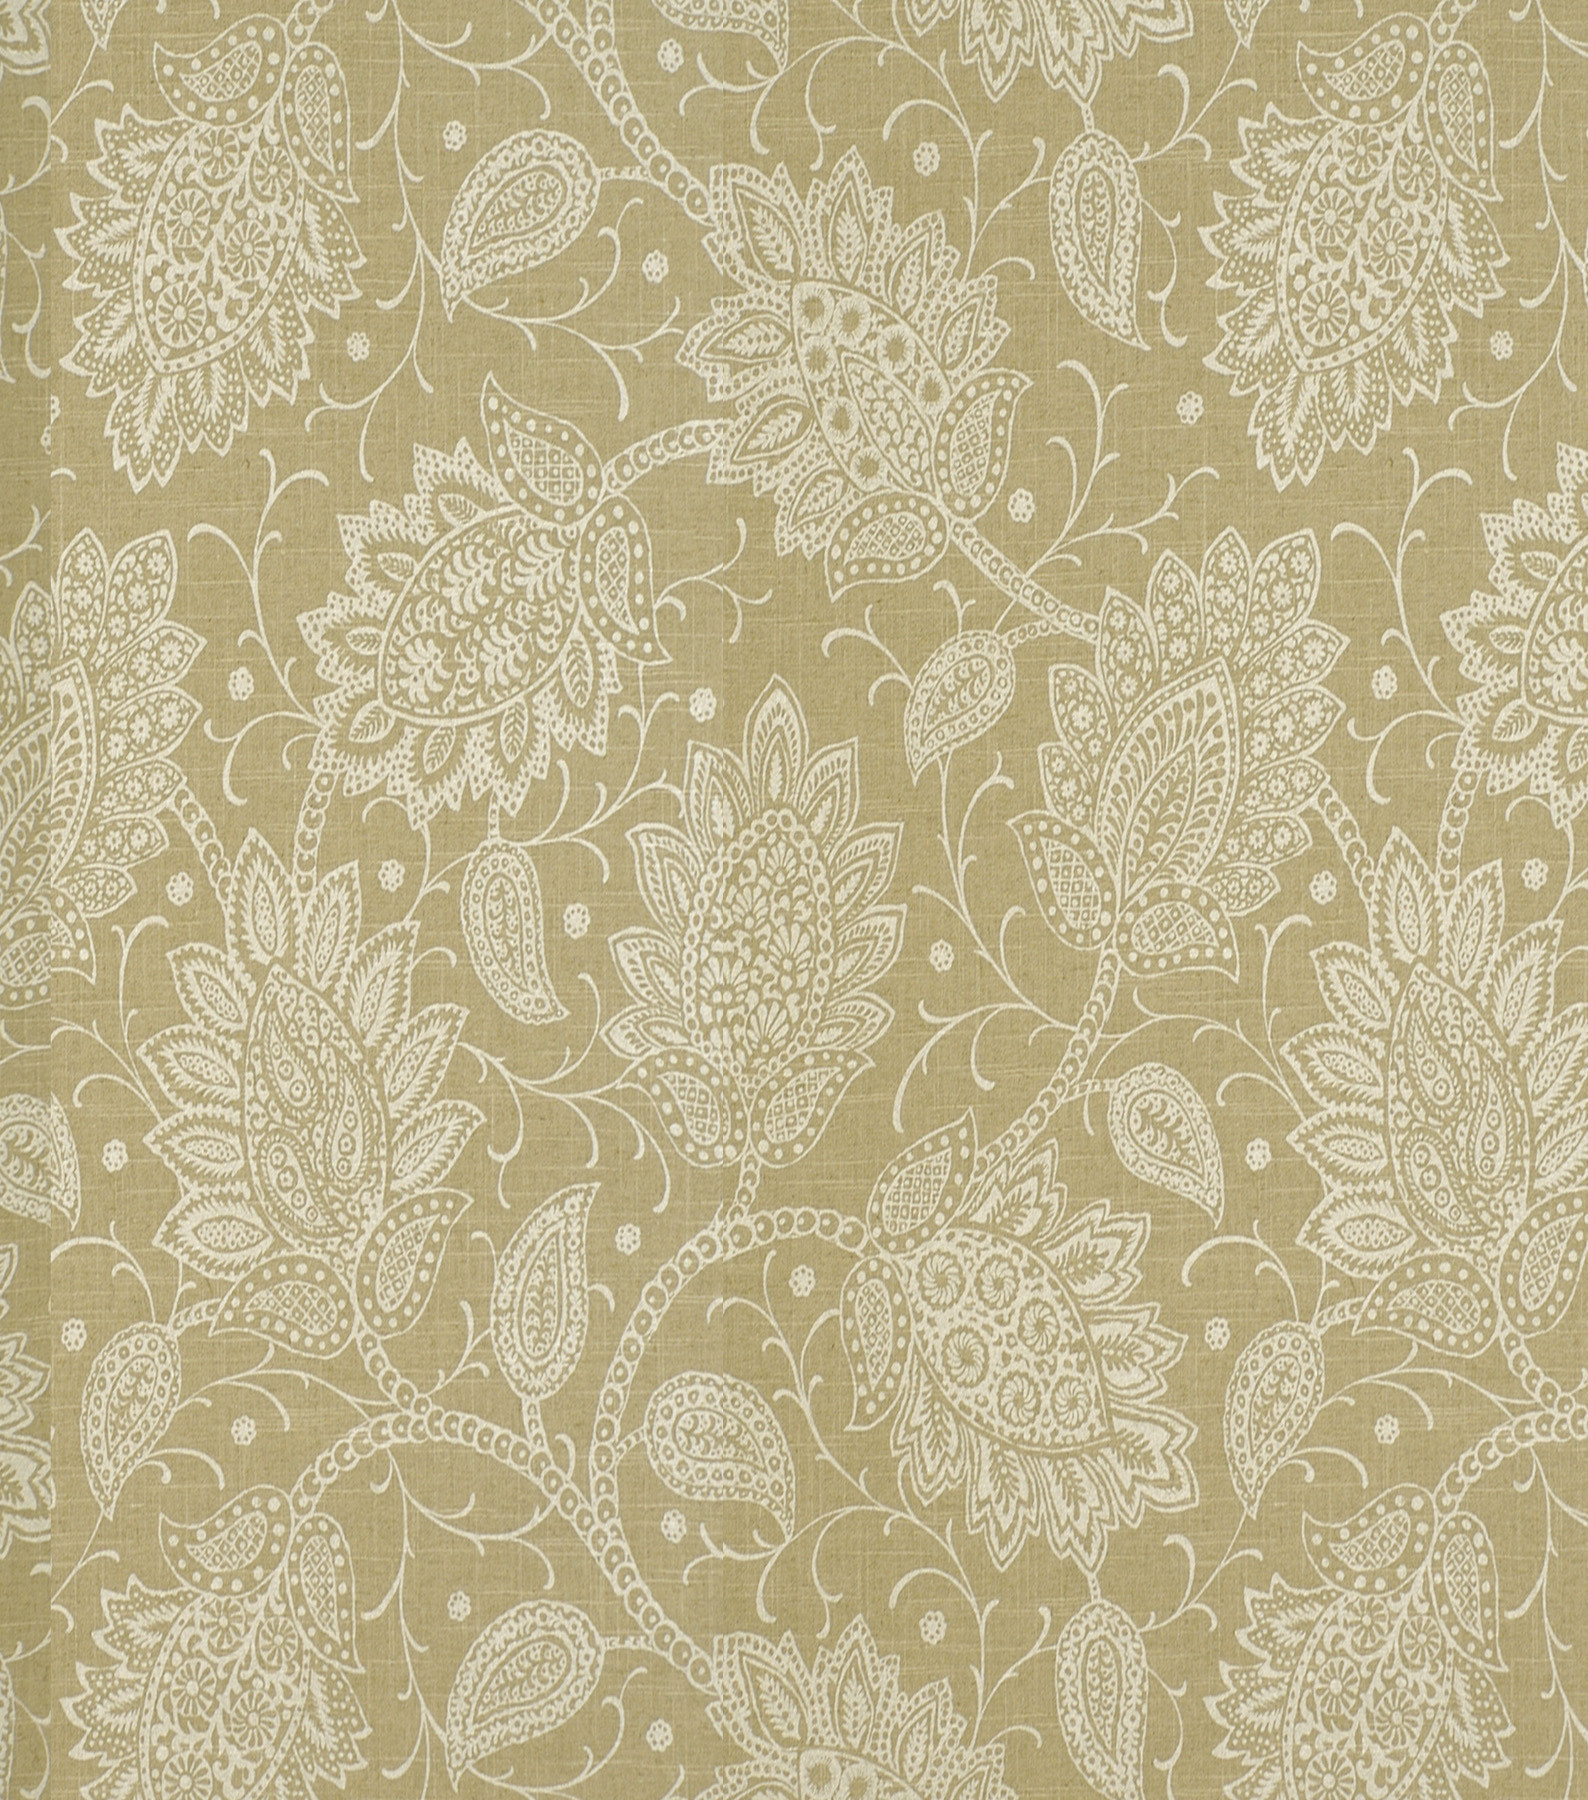 Home Decor 8\u0022x8\u0022 Fabric Swatch-Print Fabric Robert Allen Sheshimmers Latte